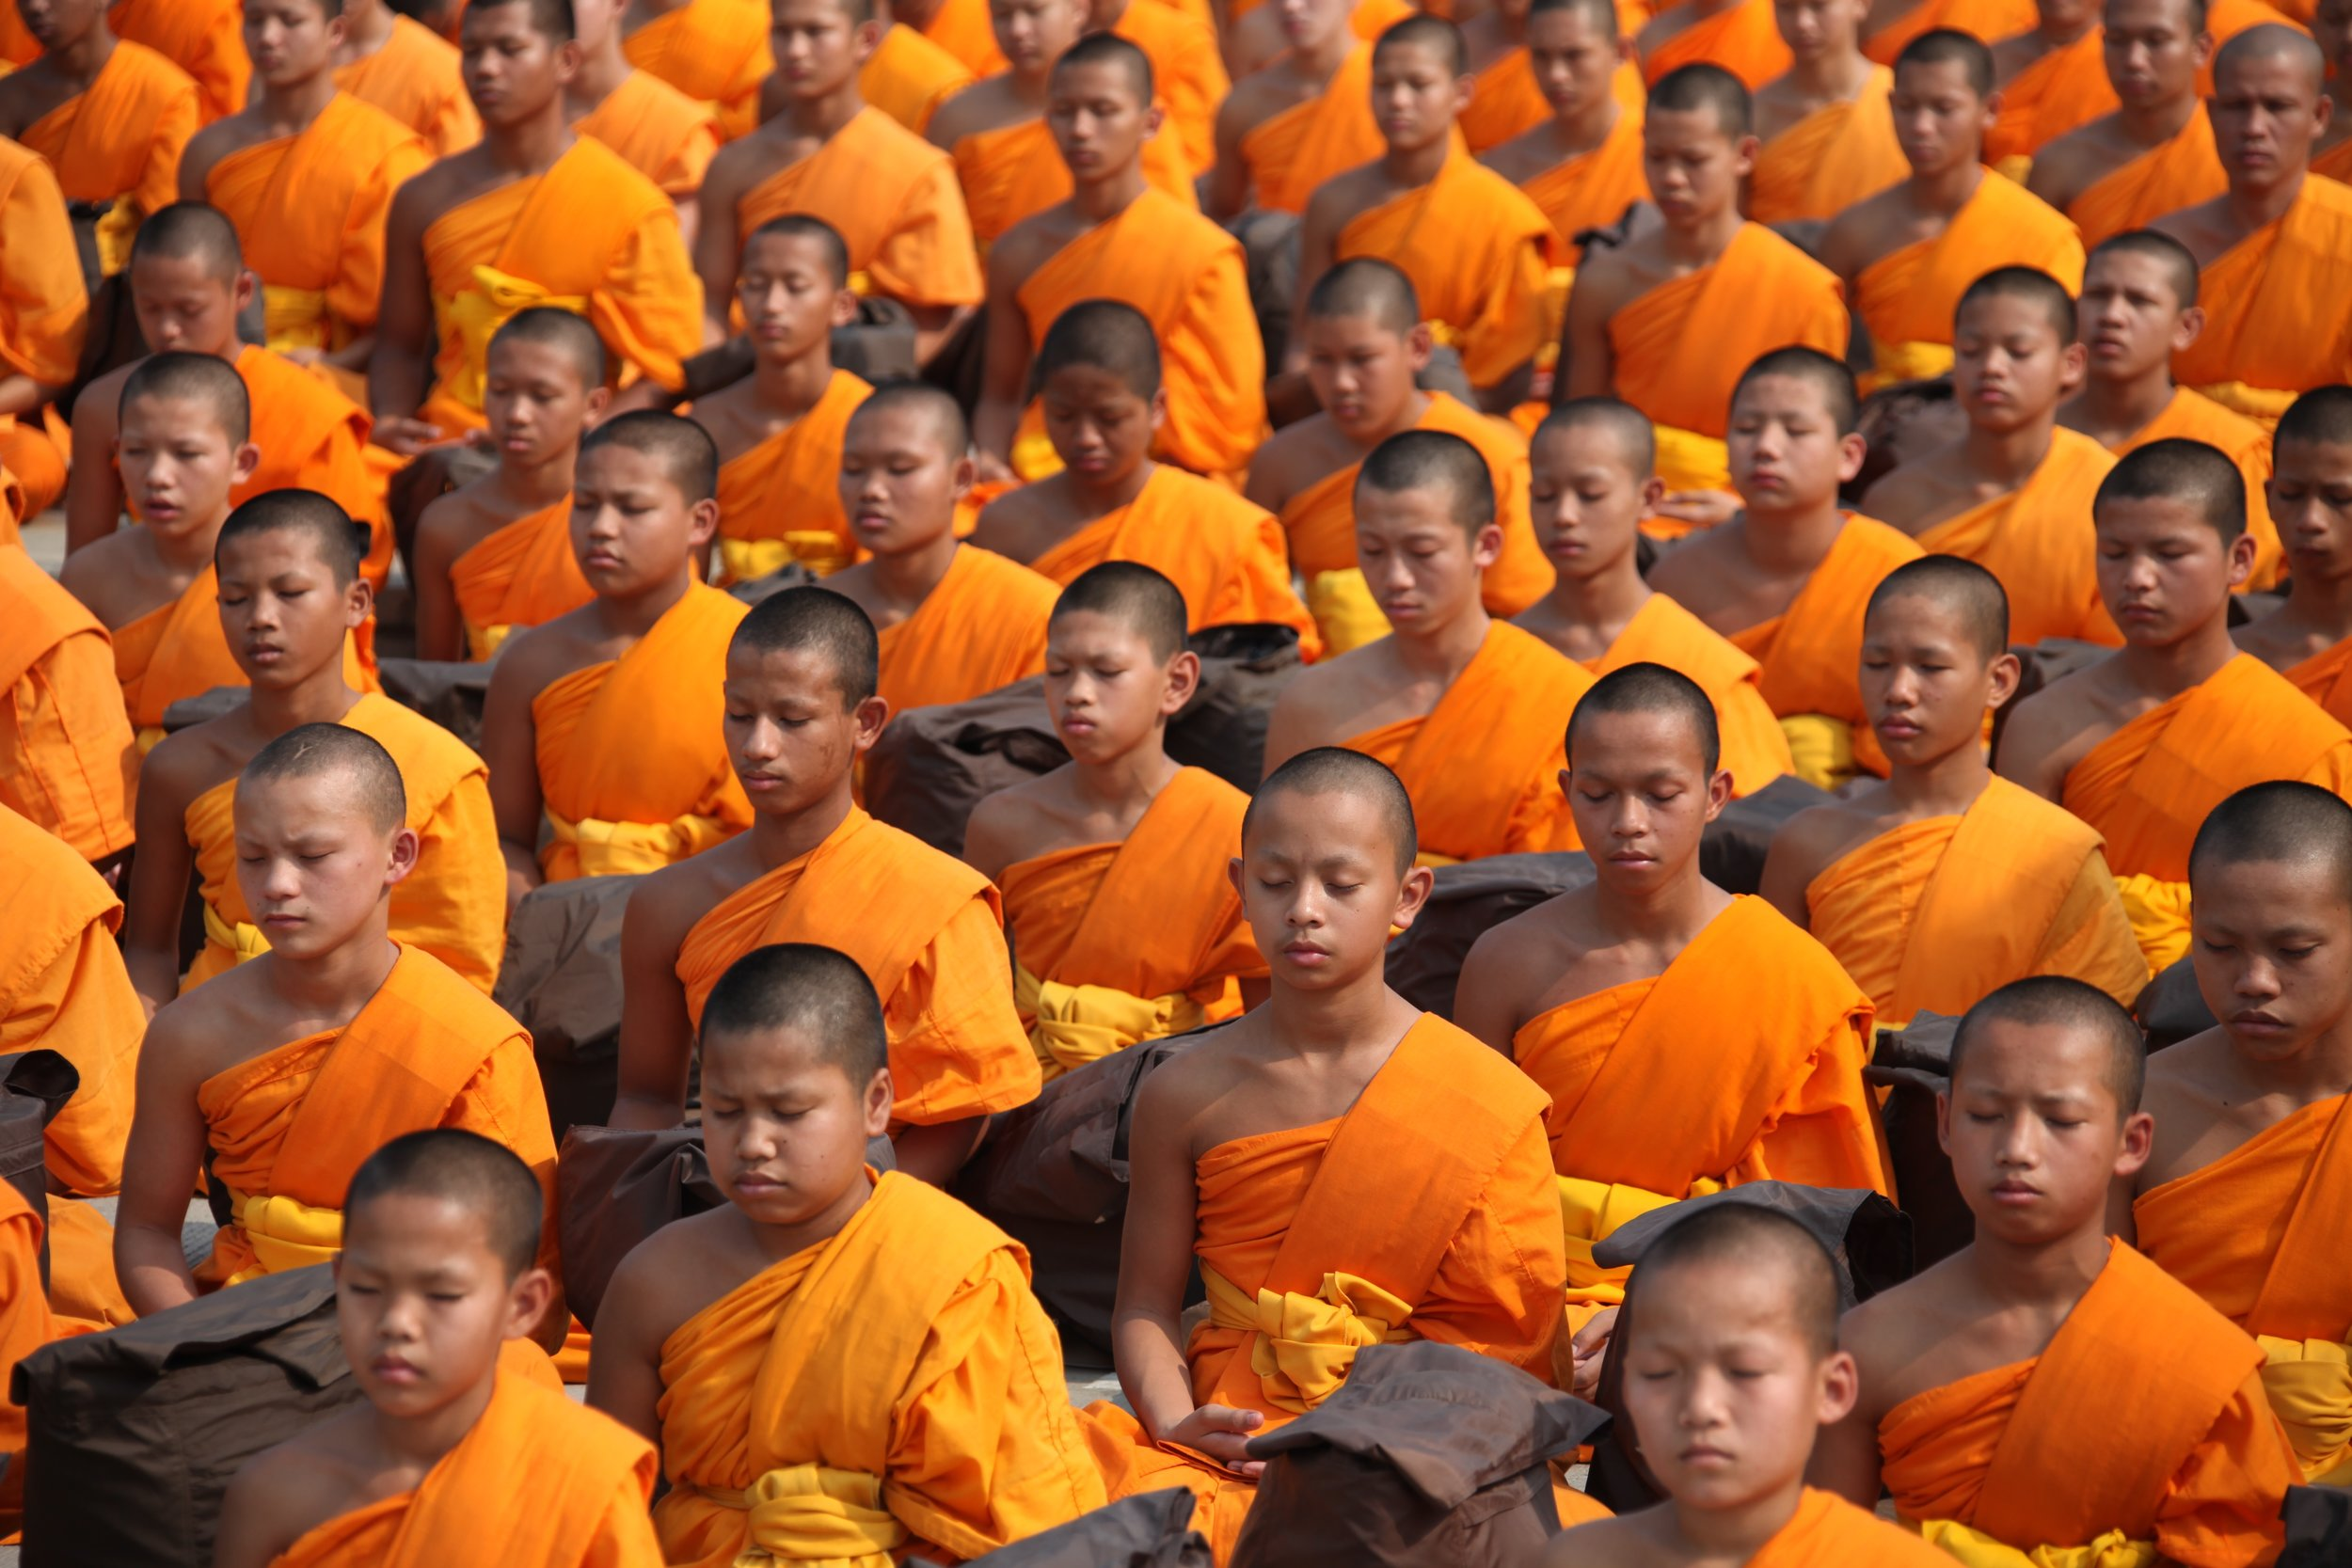 thailand-buddhists-monks-and-50709.jpeg